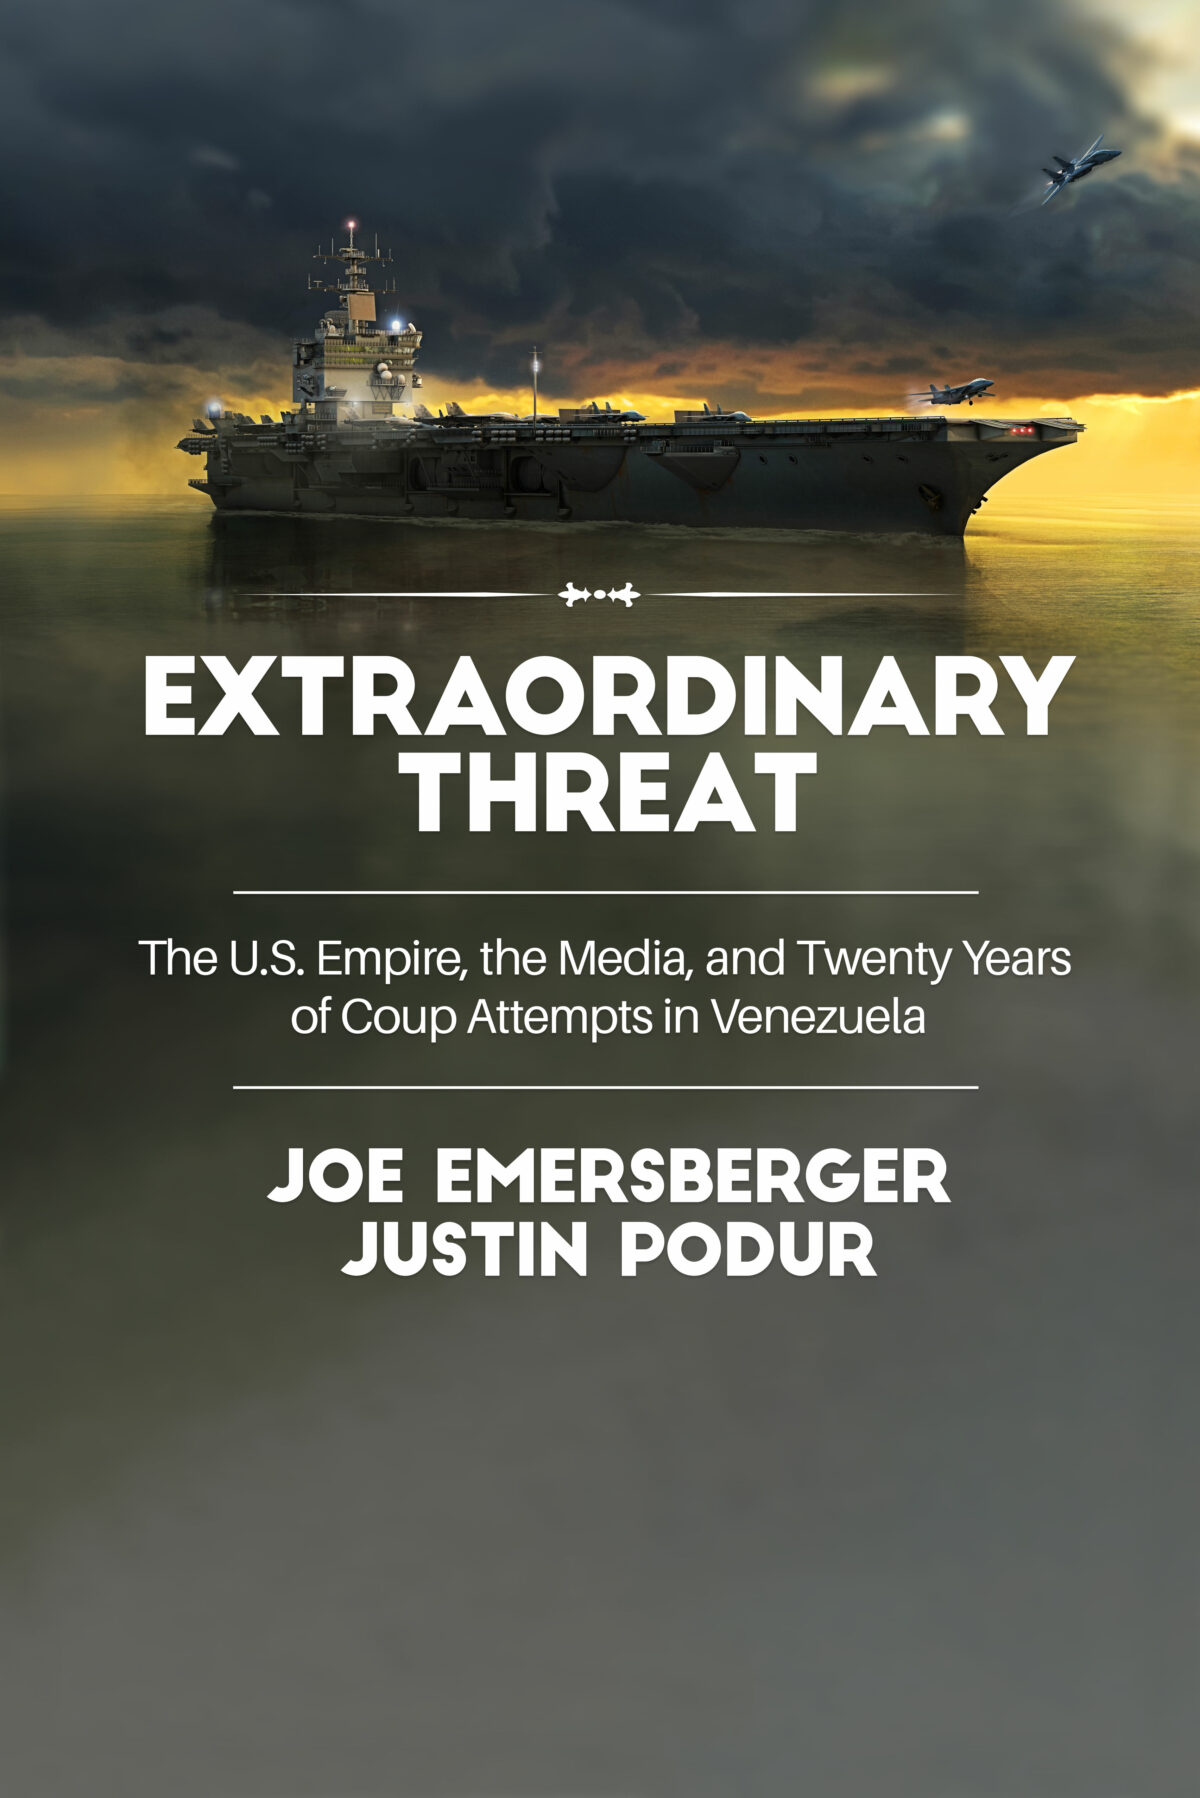 AEP 92: Q/A on Extraordinary Threat, our new book on Venezuela